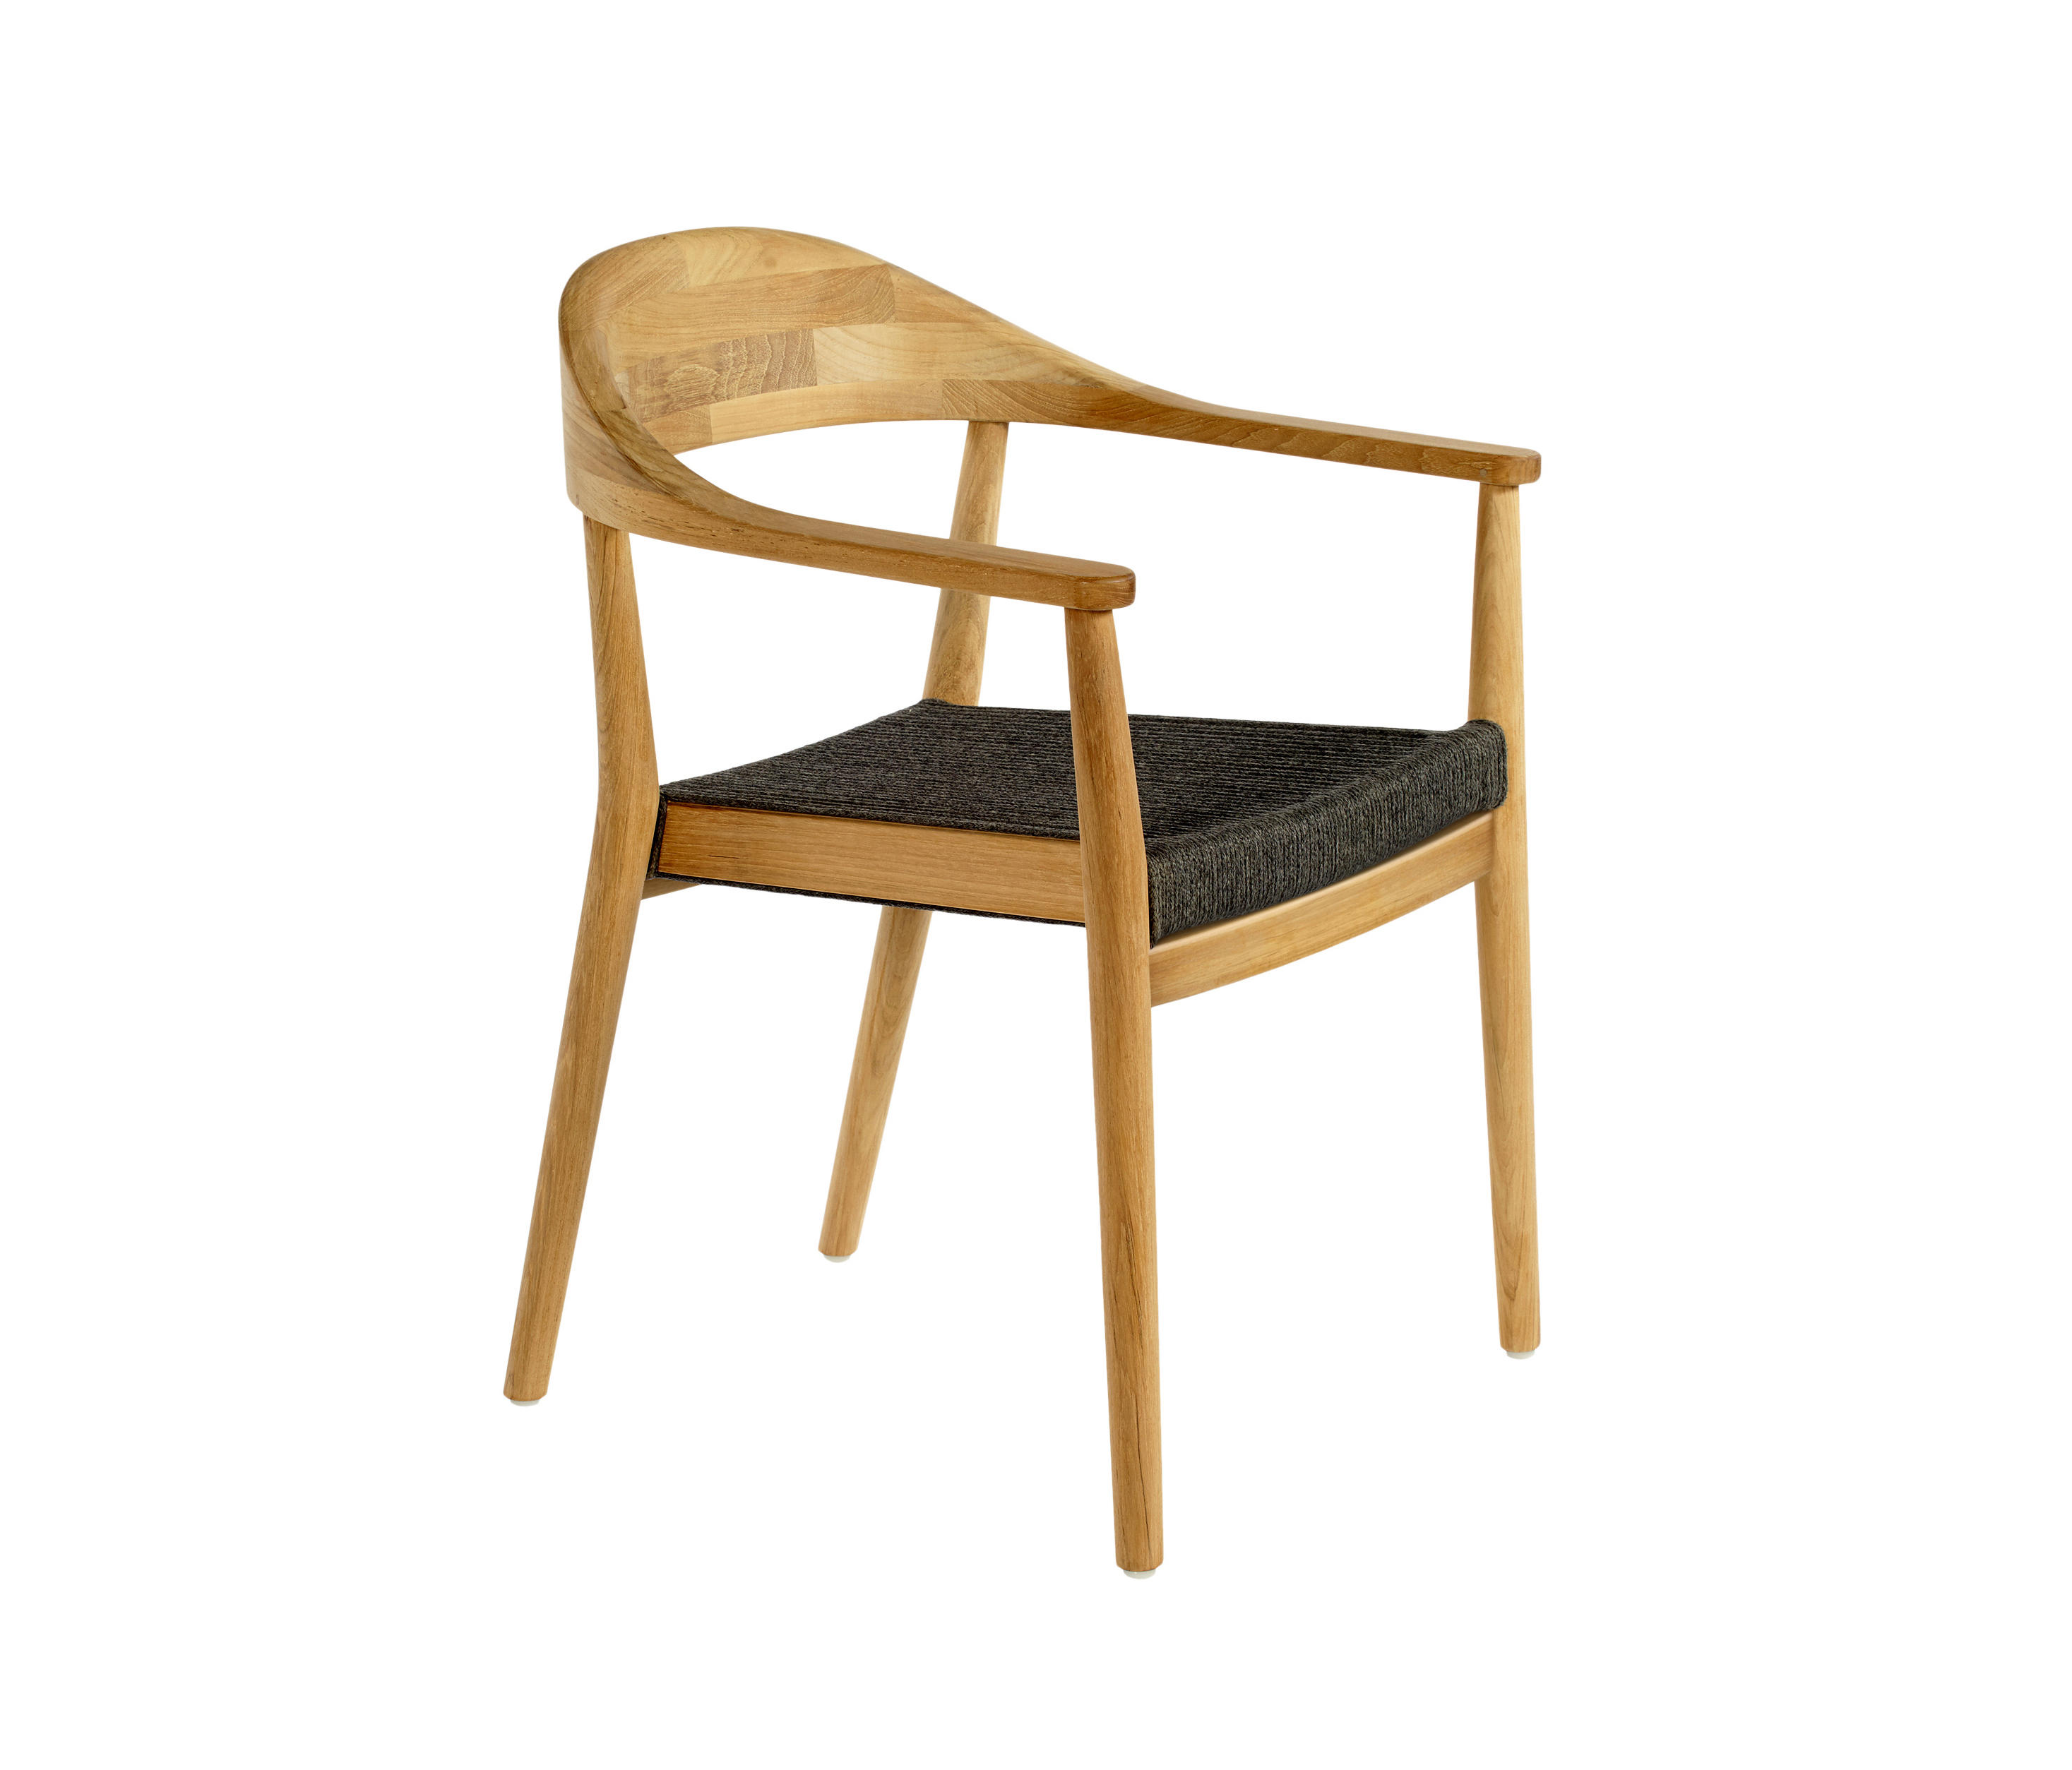 Skagen Copenhagen Armchair By Oasiq | Chairs